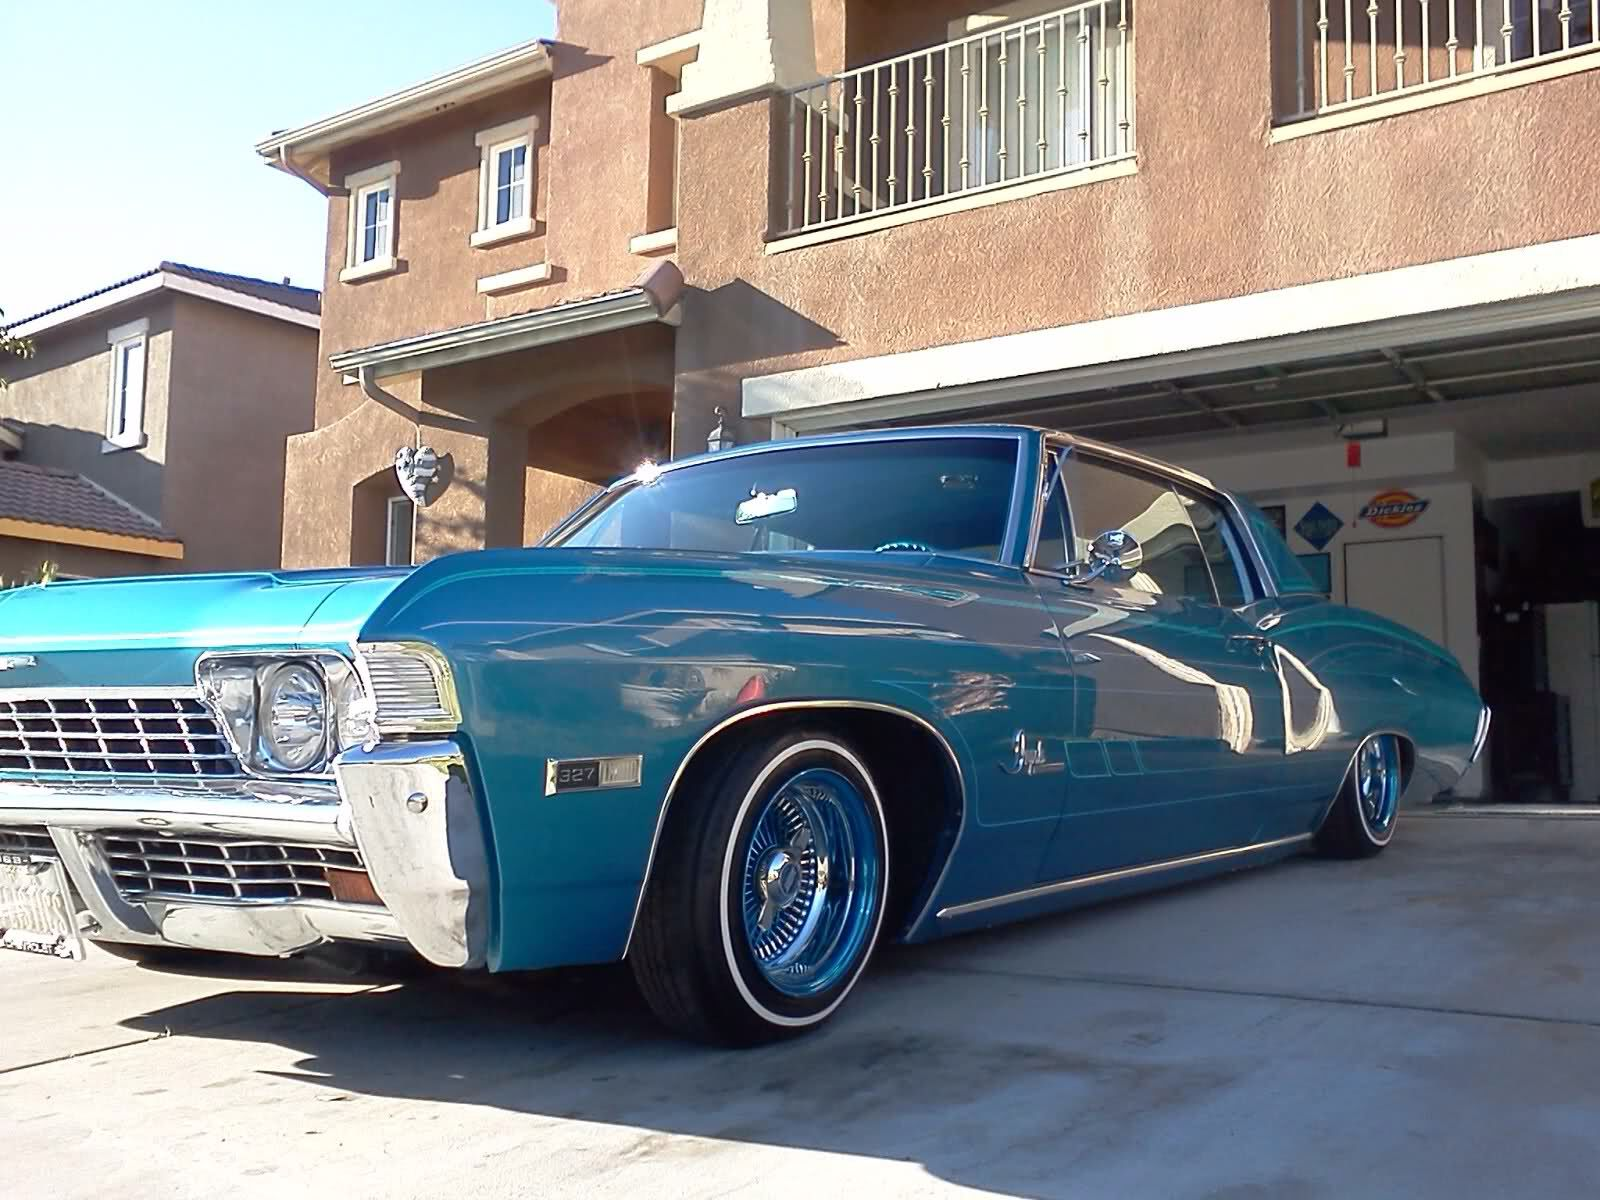 68 Impala Left Side Lowriders Lowrider Cars Best Classic Cars